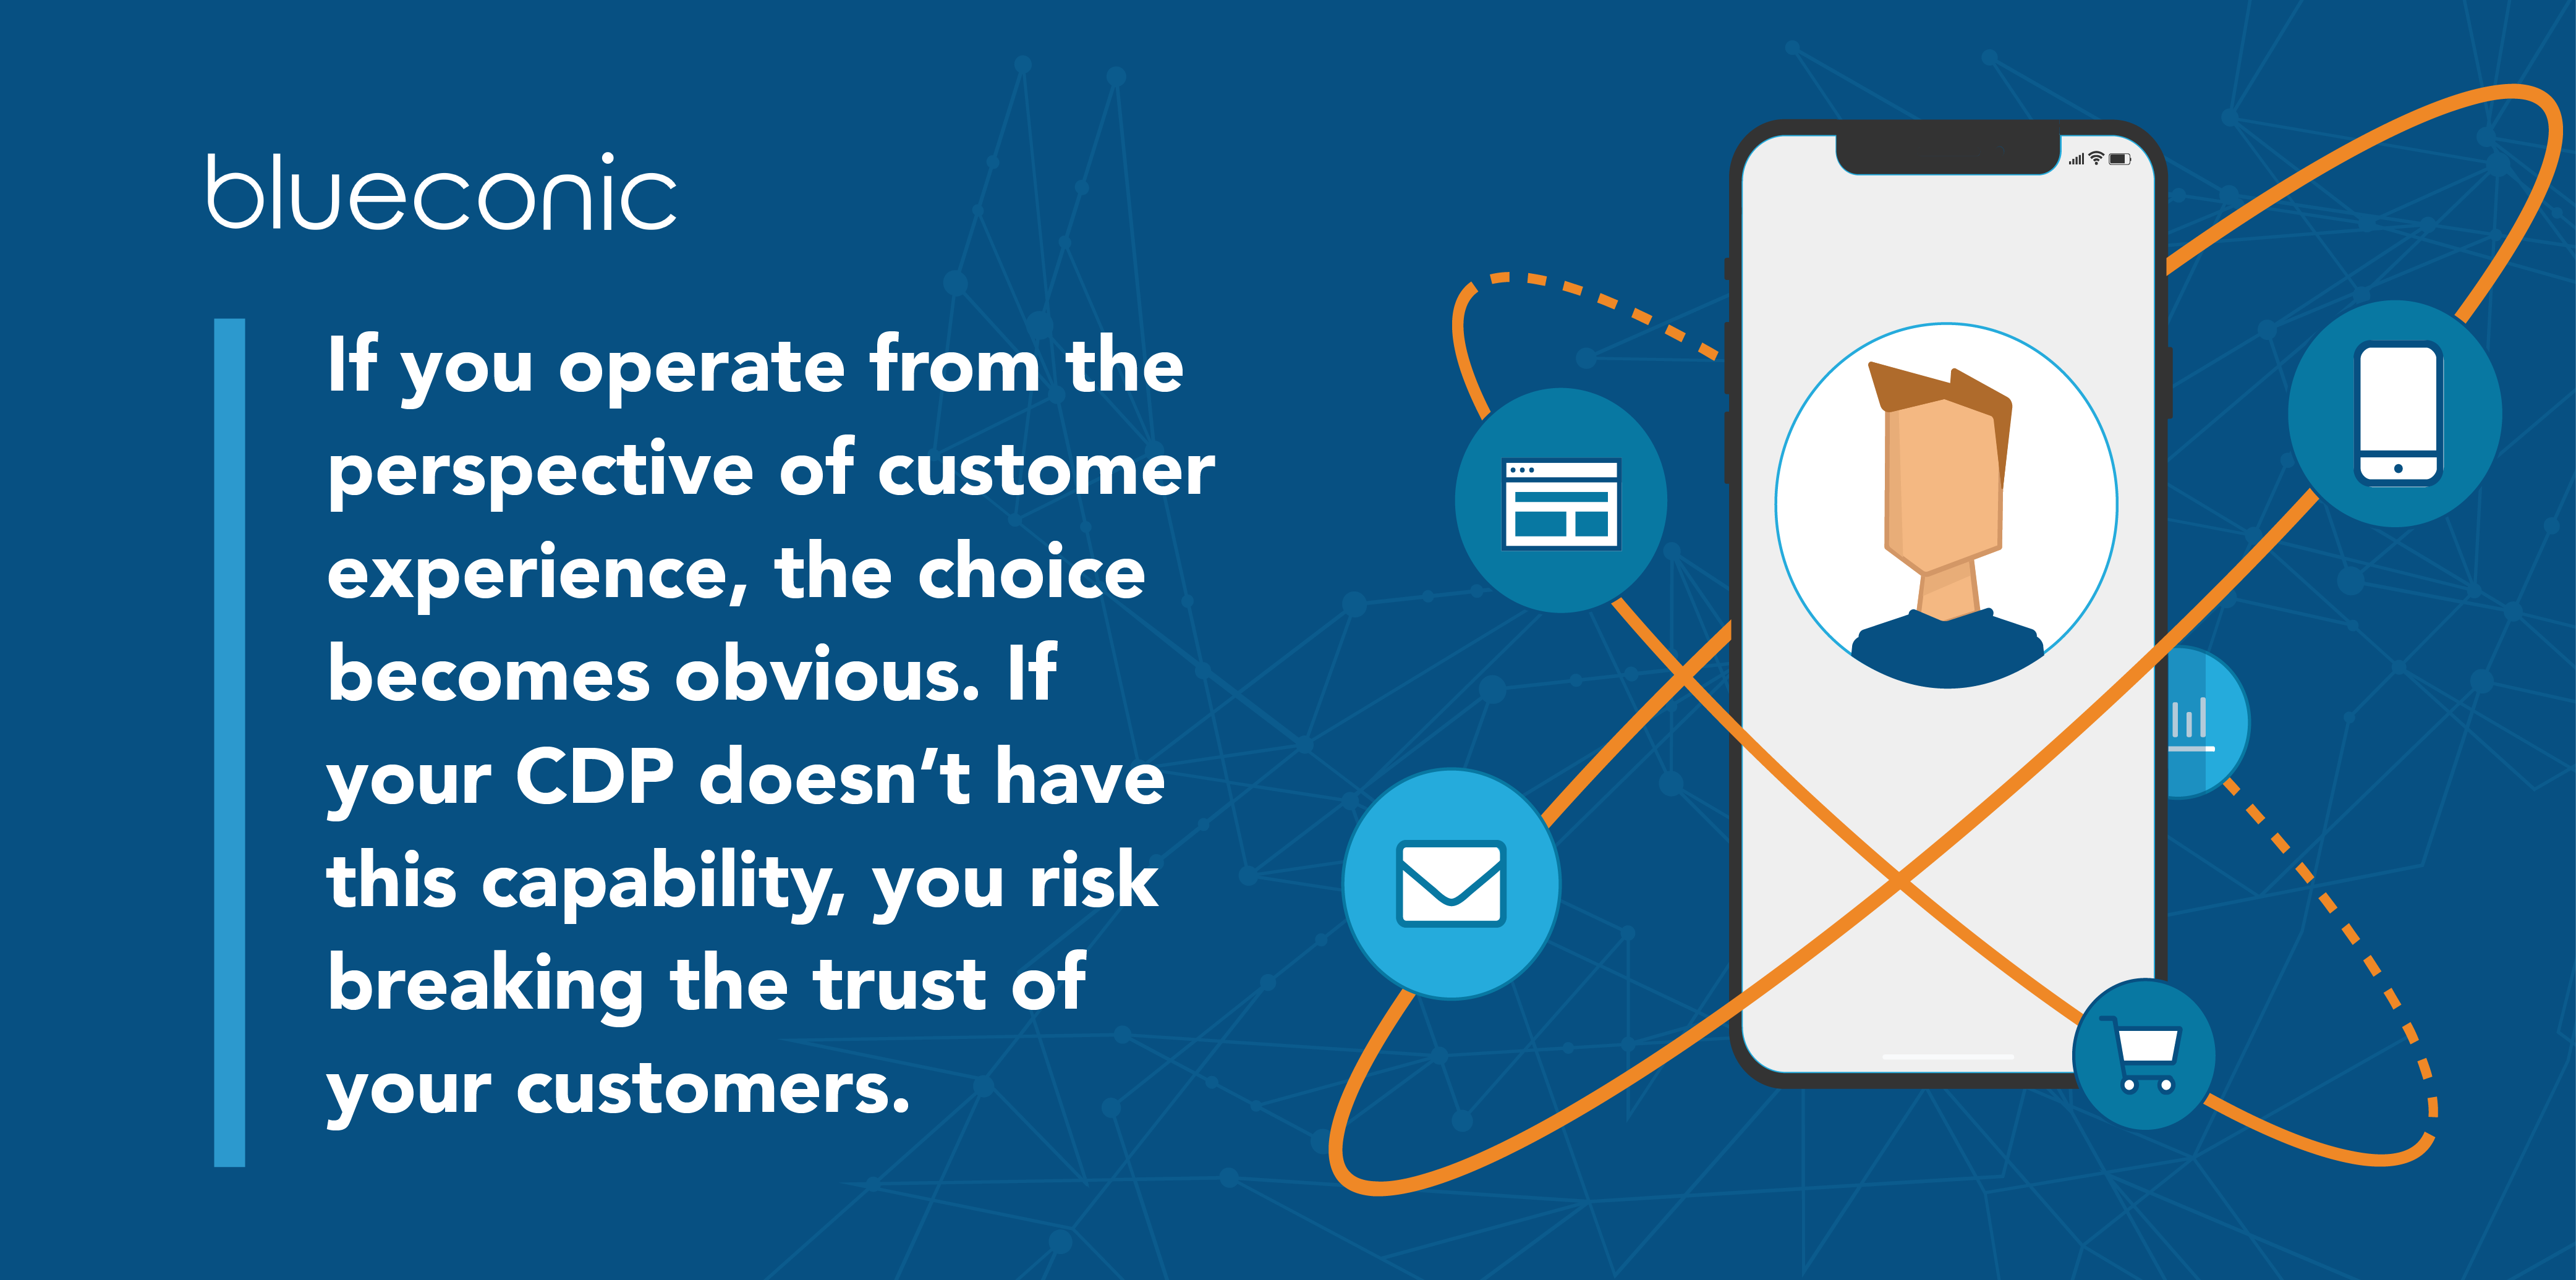 If you operate from the perspective of customer experience, the choice becomes obvious. If your CDP doesn't have this capability, you risk breaking the trust of your customers.